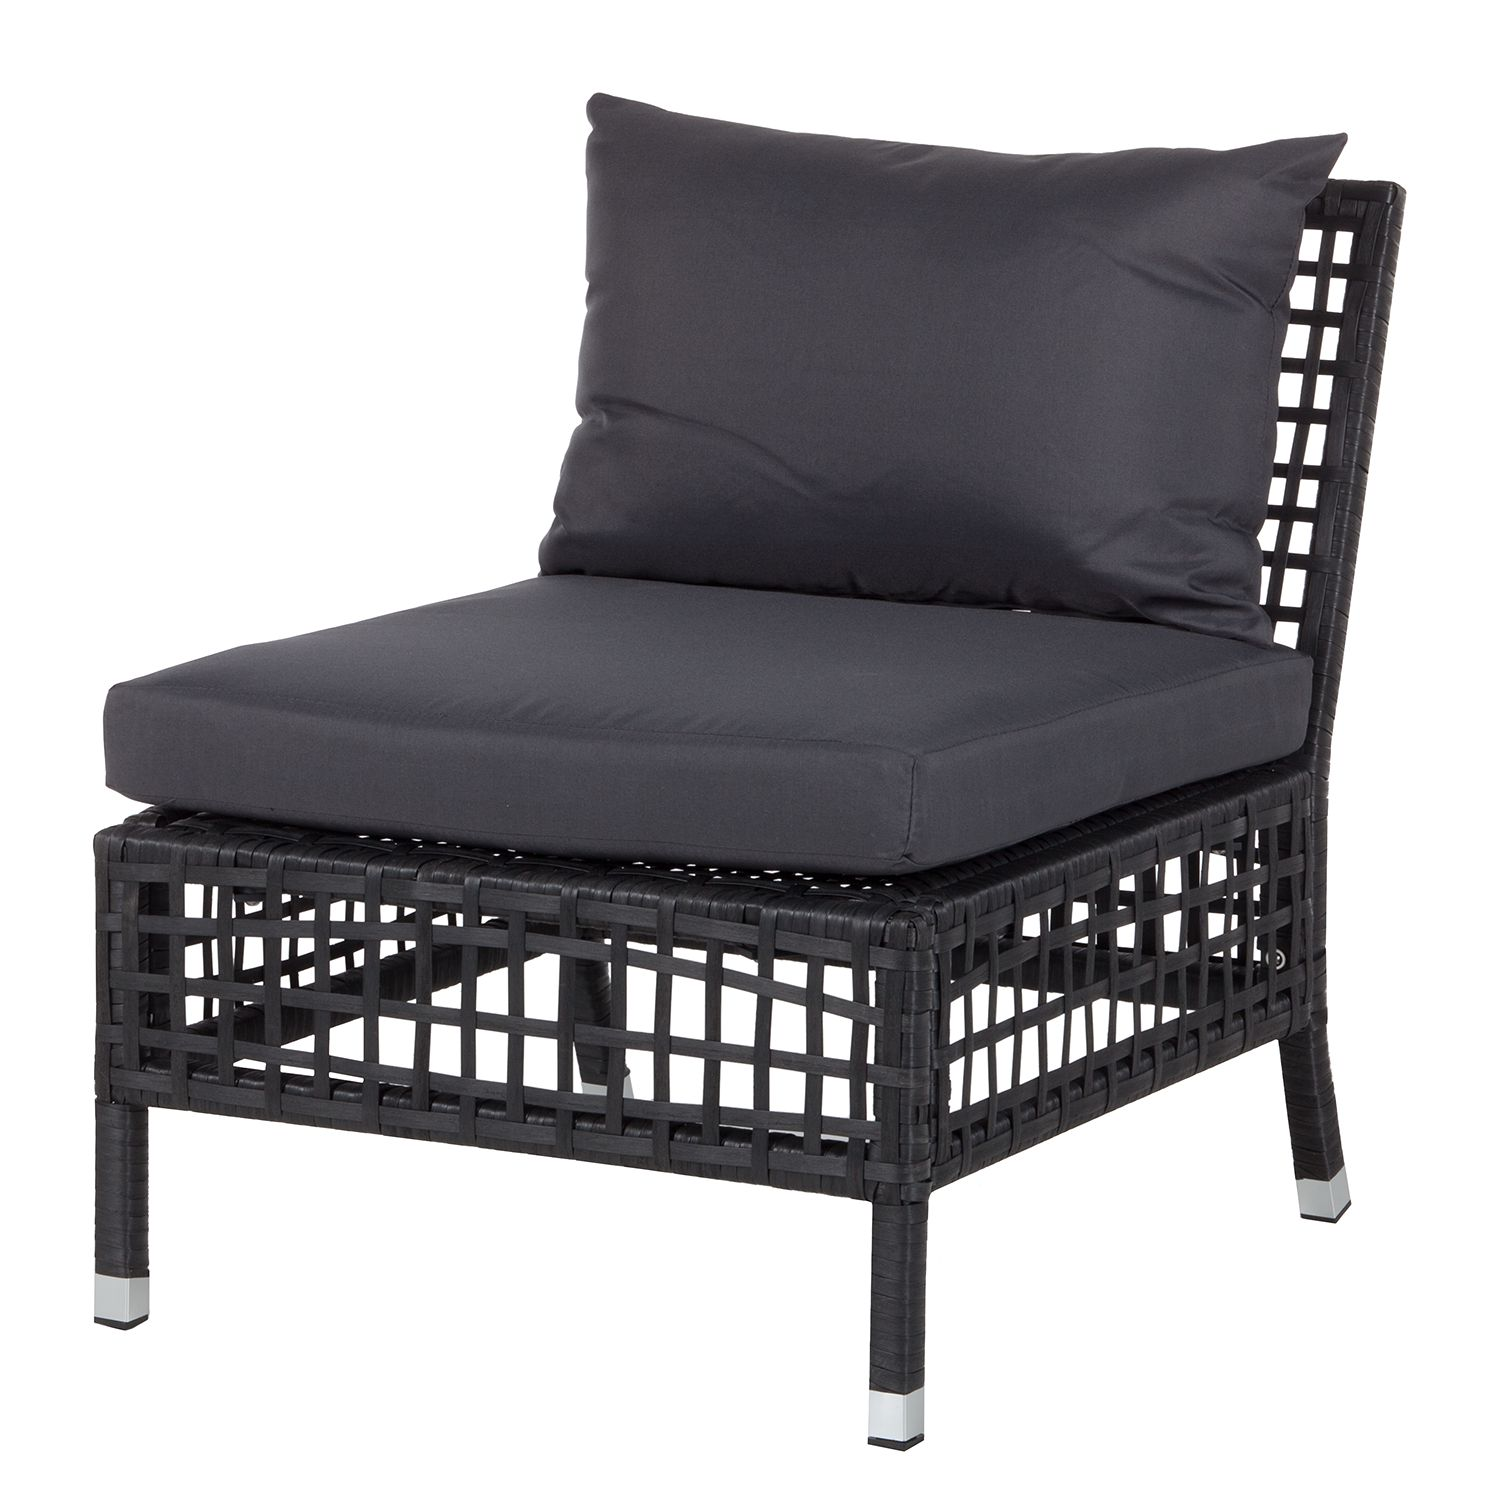 loungesessel nuoro von king s garden nur 79 99 cherry m bel home24. Black Bedroom Furniture Sets. Home Design Ideas